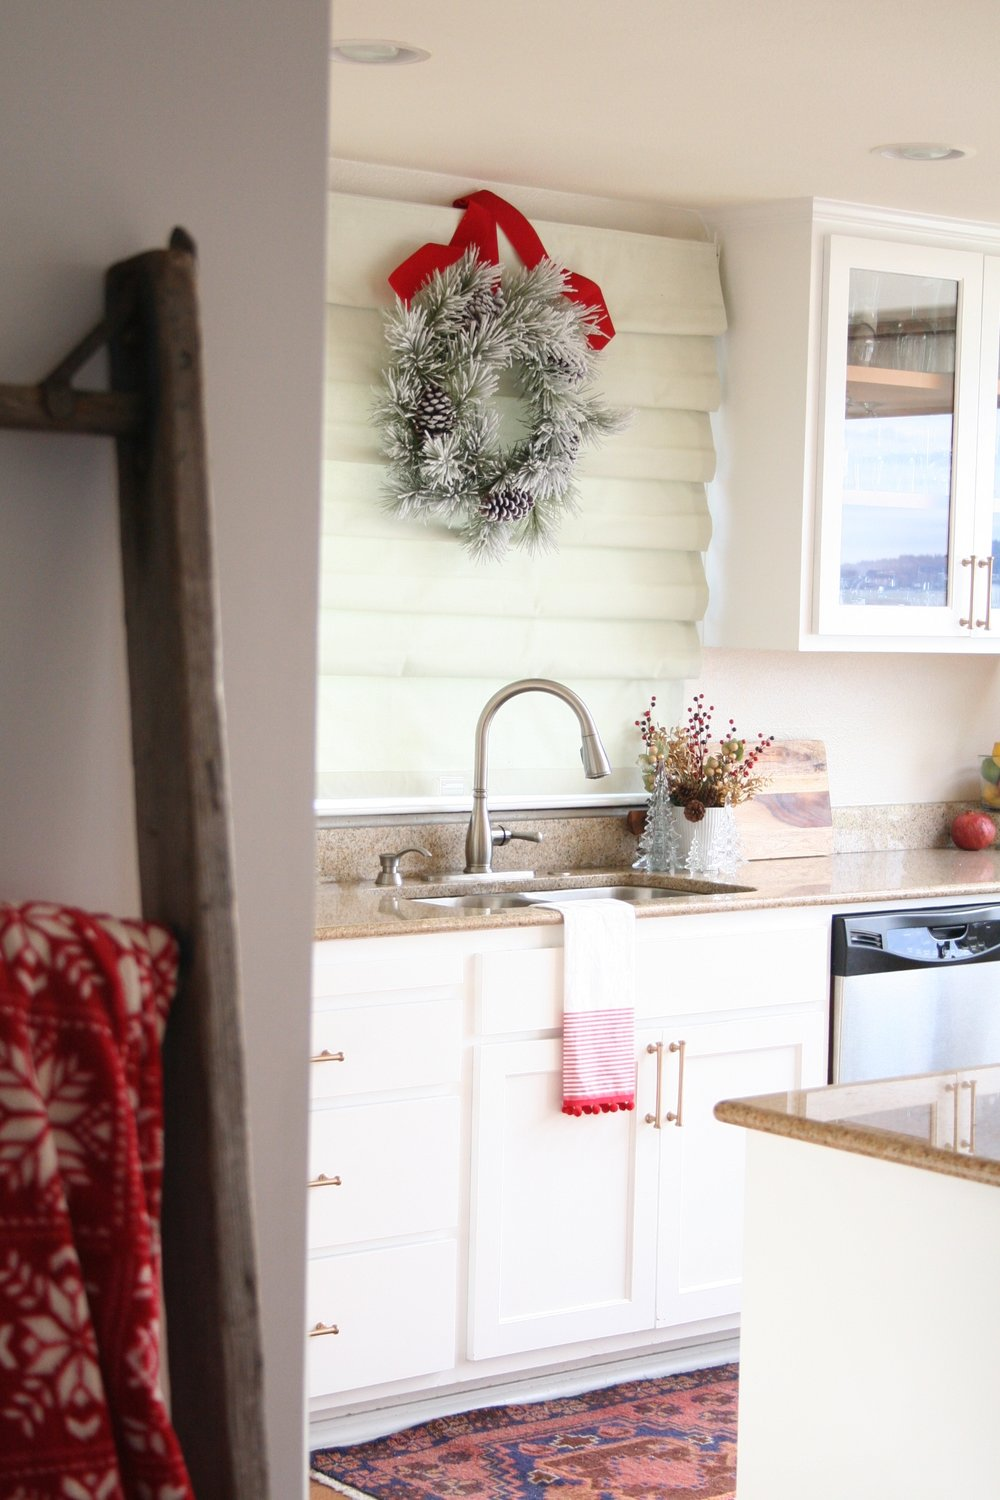 Christmas Kitchen Wreath over Sink